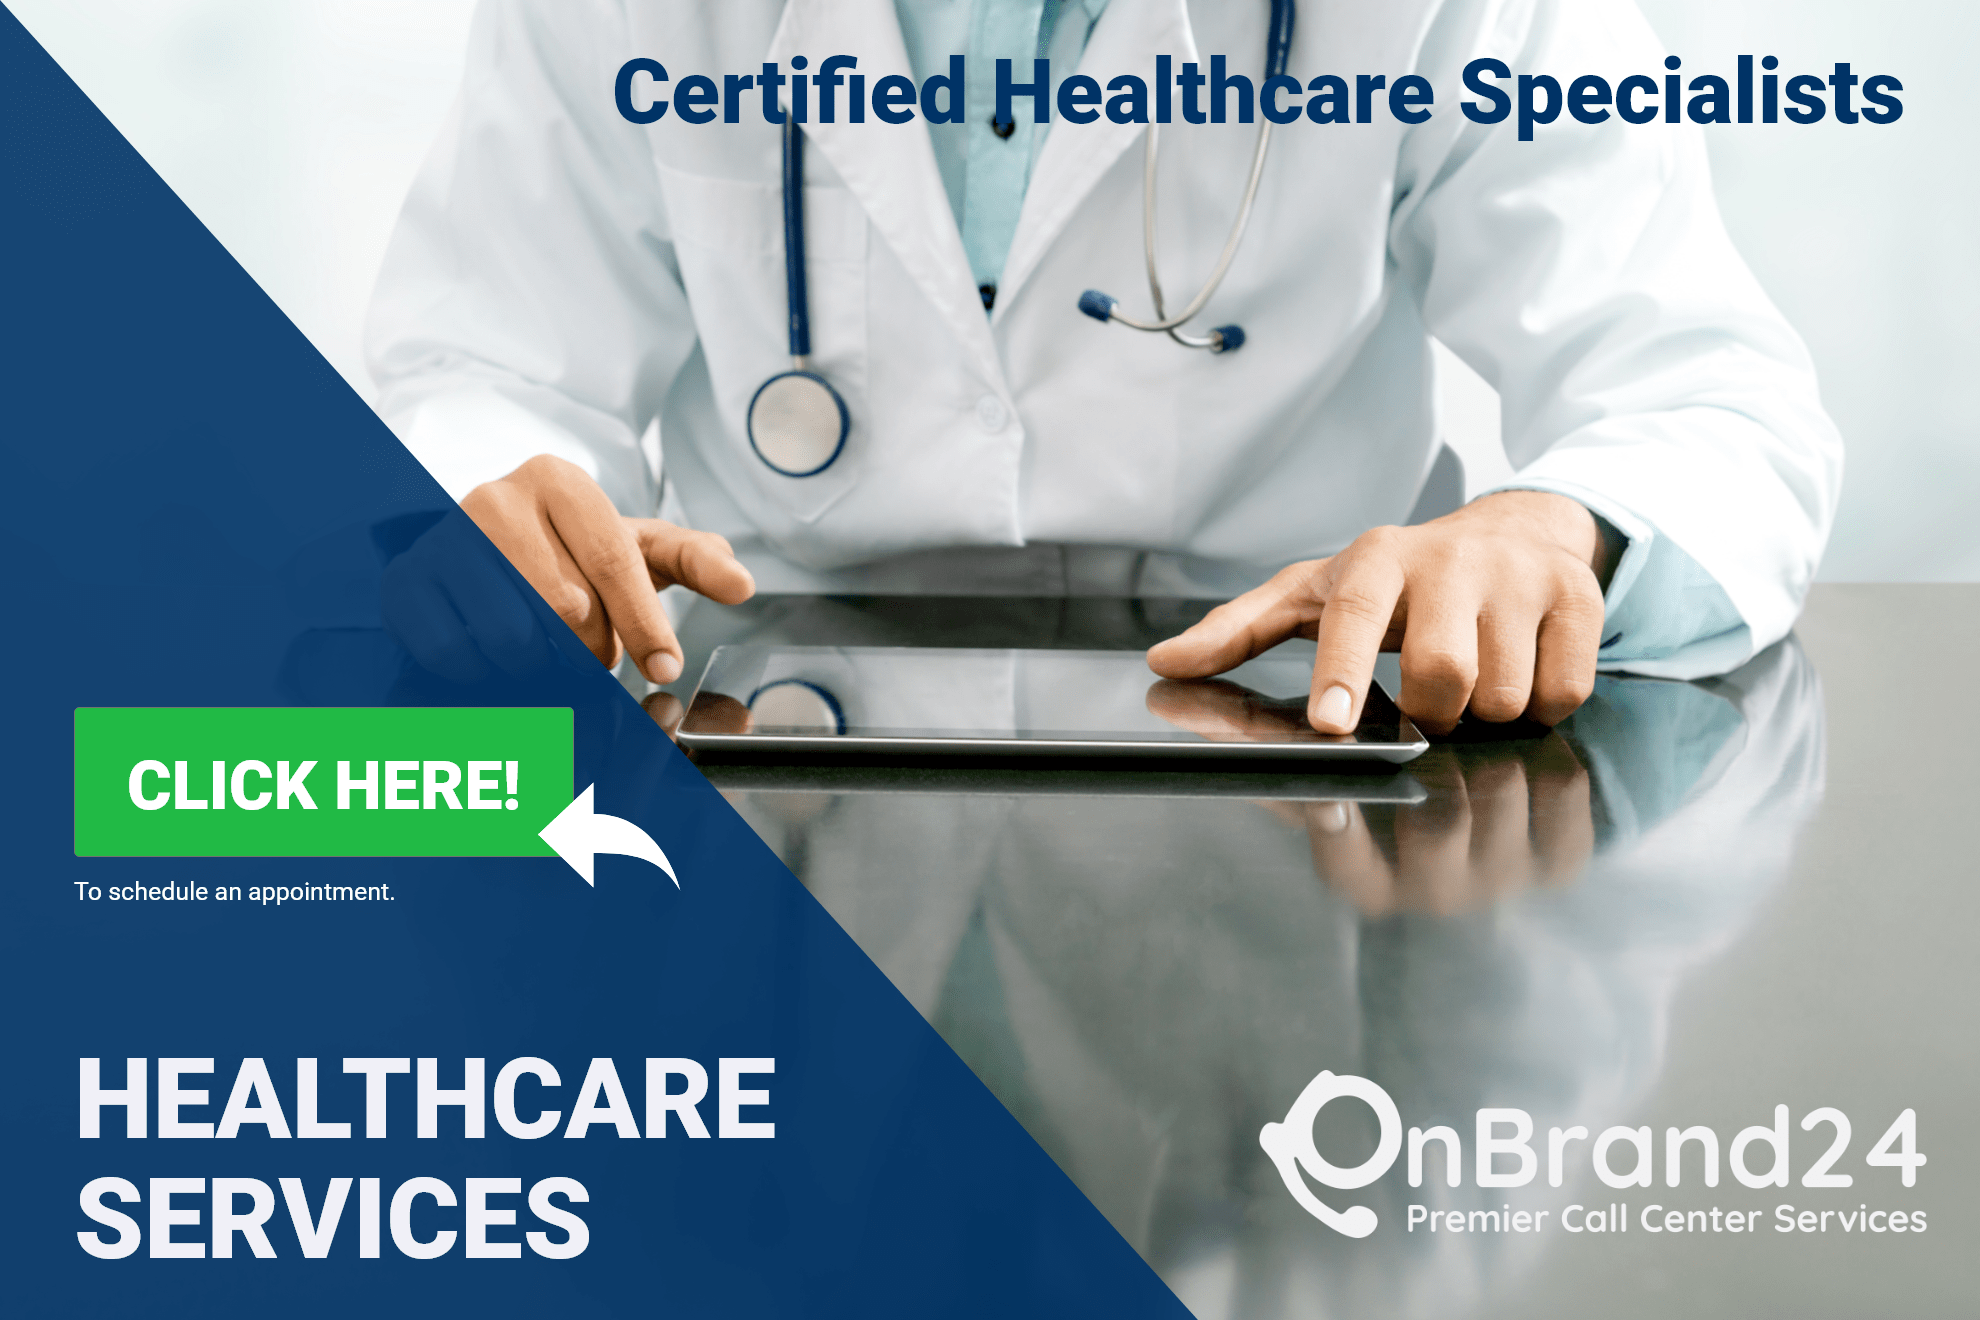 Healthcare Service with OnBrand24 Call Center Outsourcing